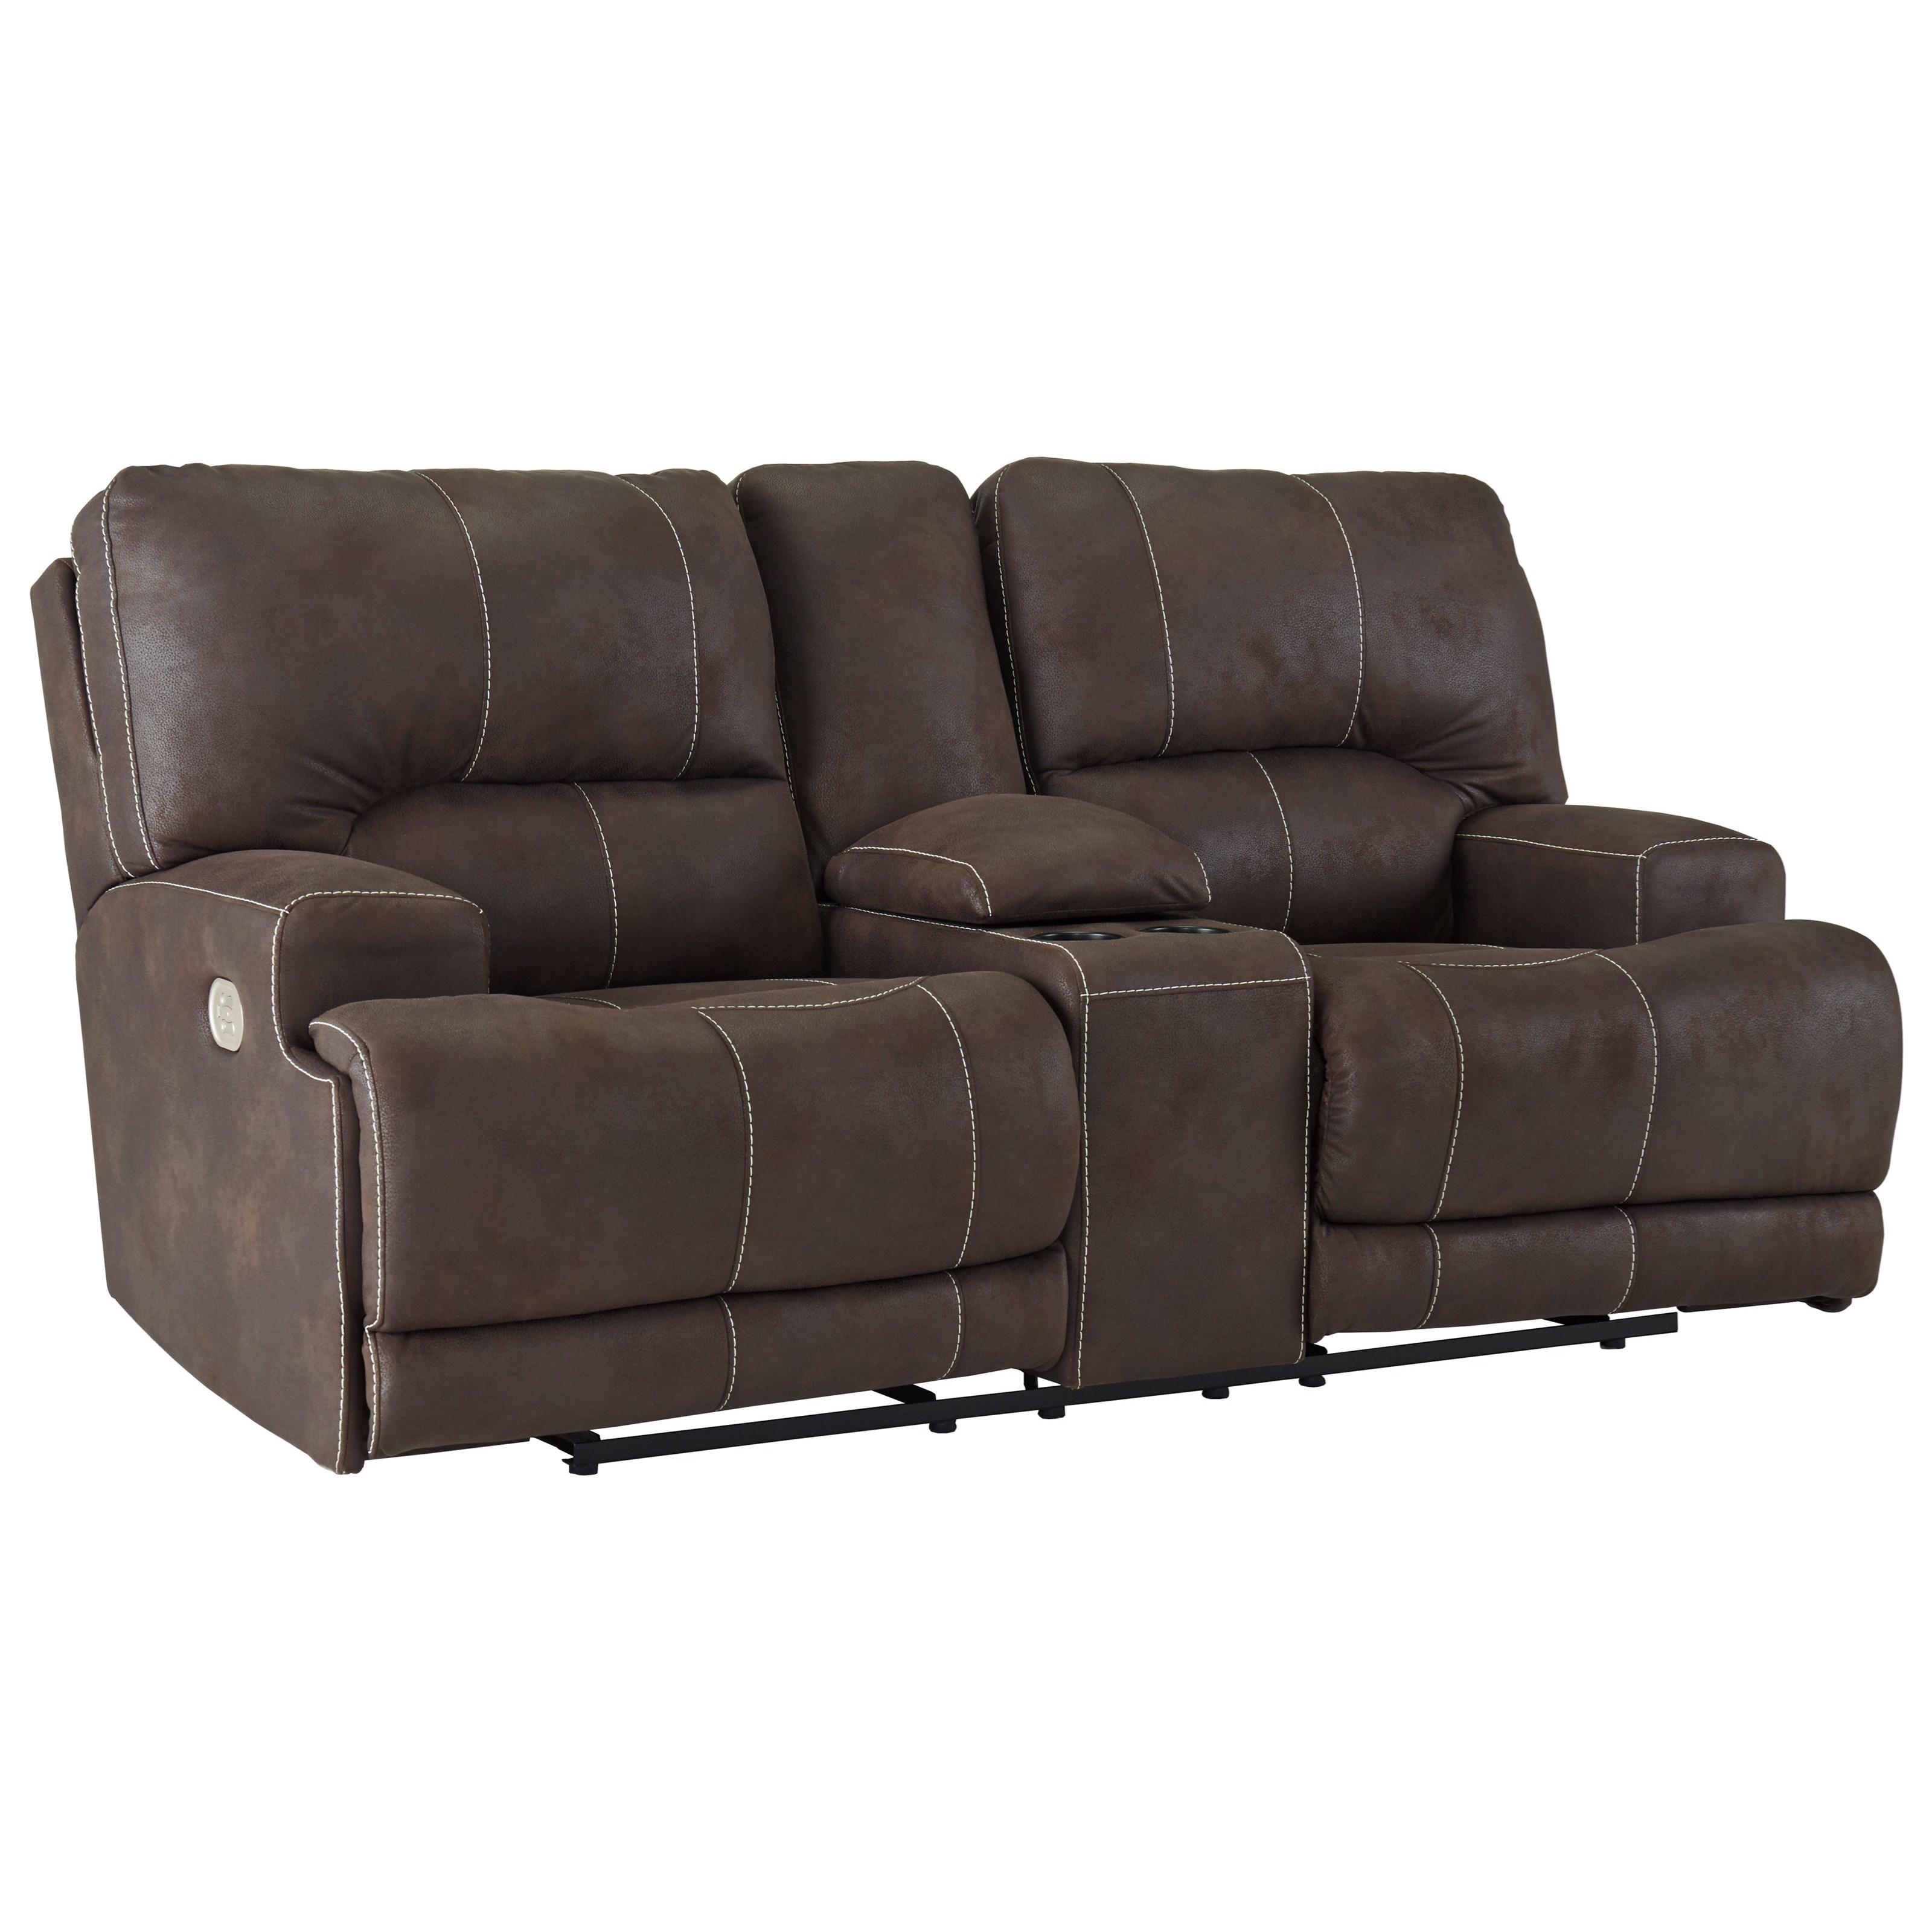 Kitching Power Reclining Console Loveseat by Signature Design by Ashley at Value City Furniture